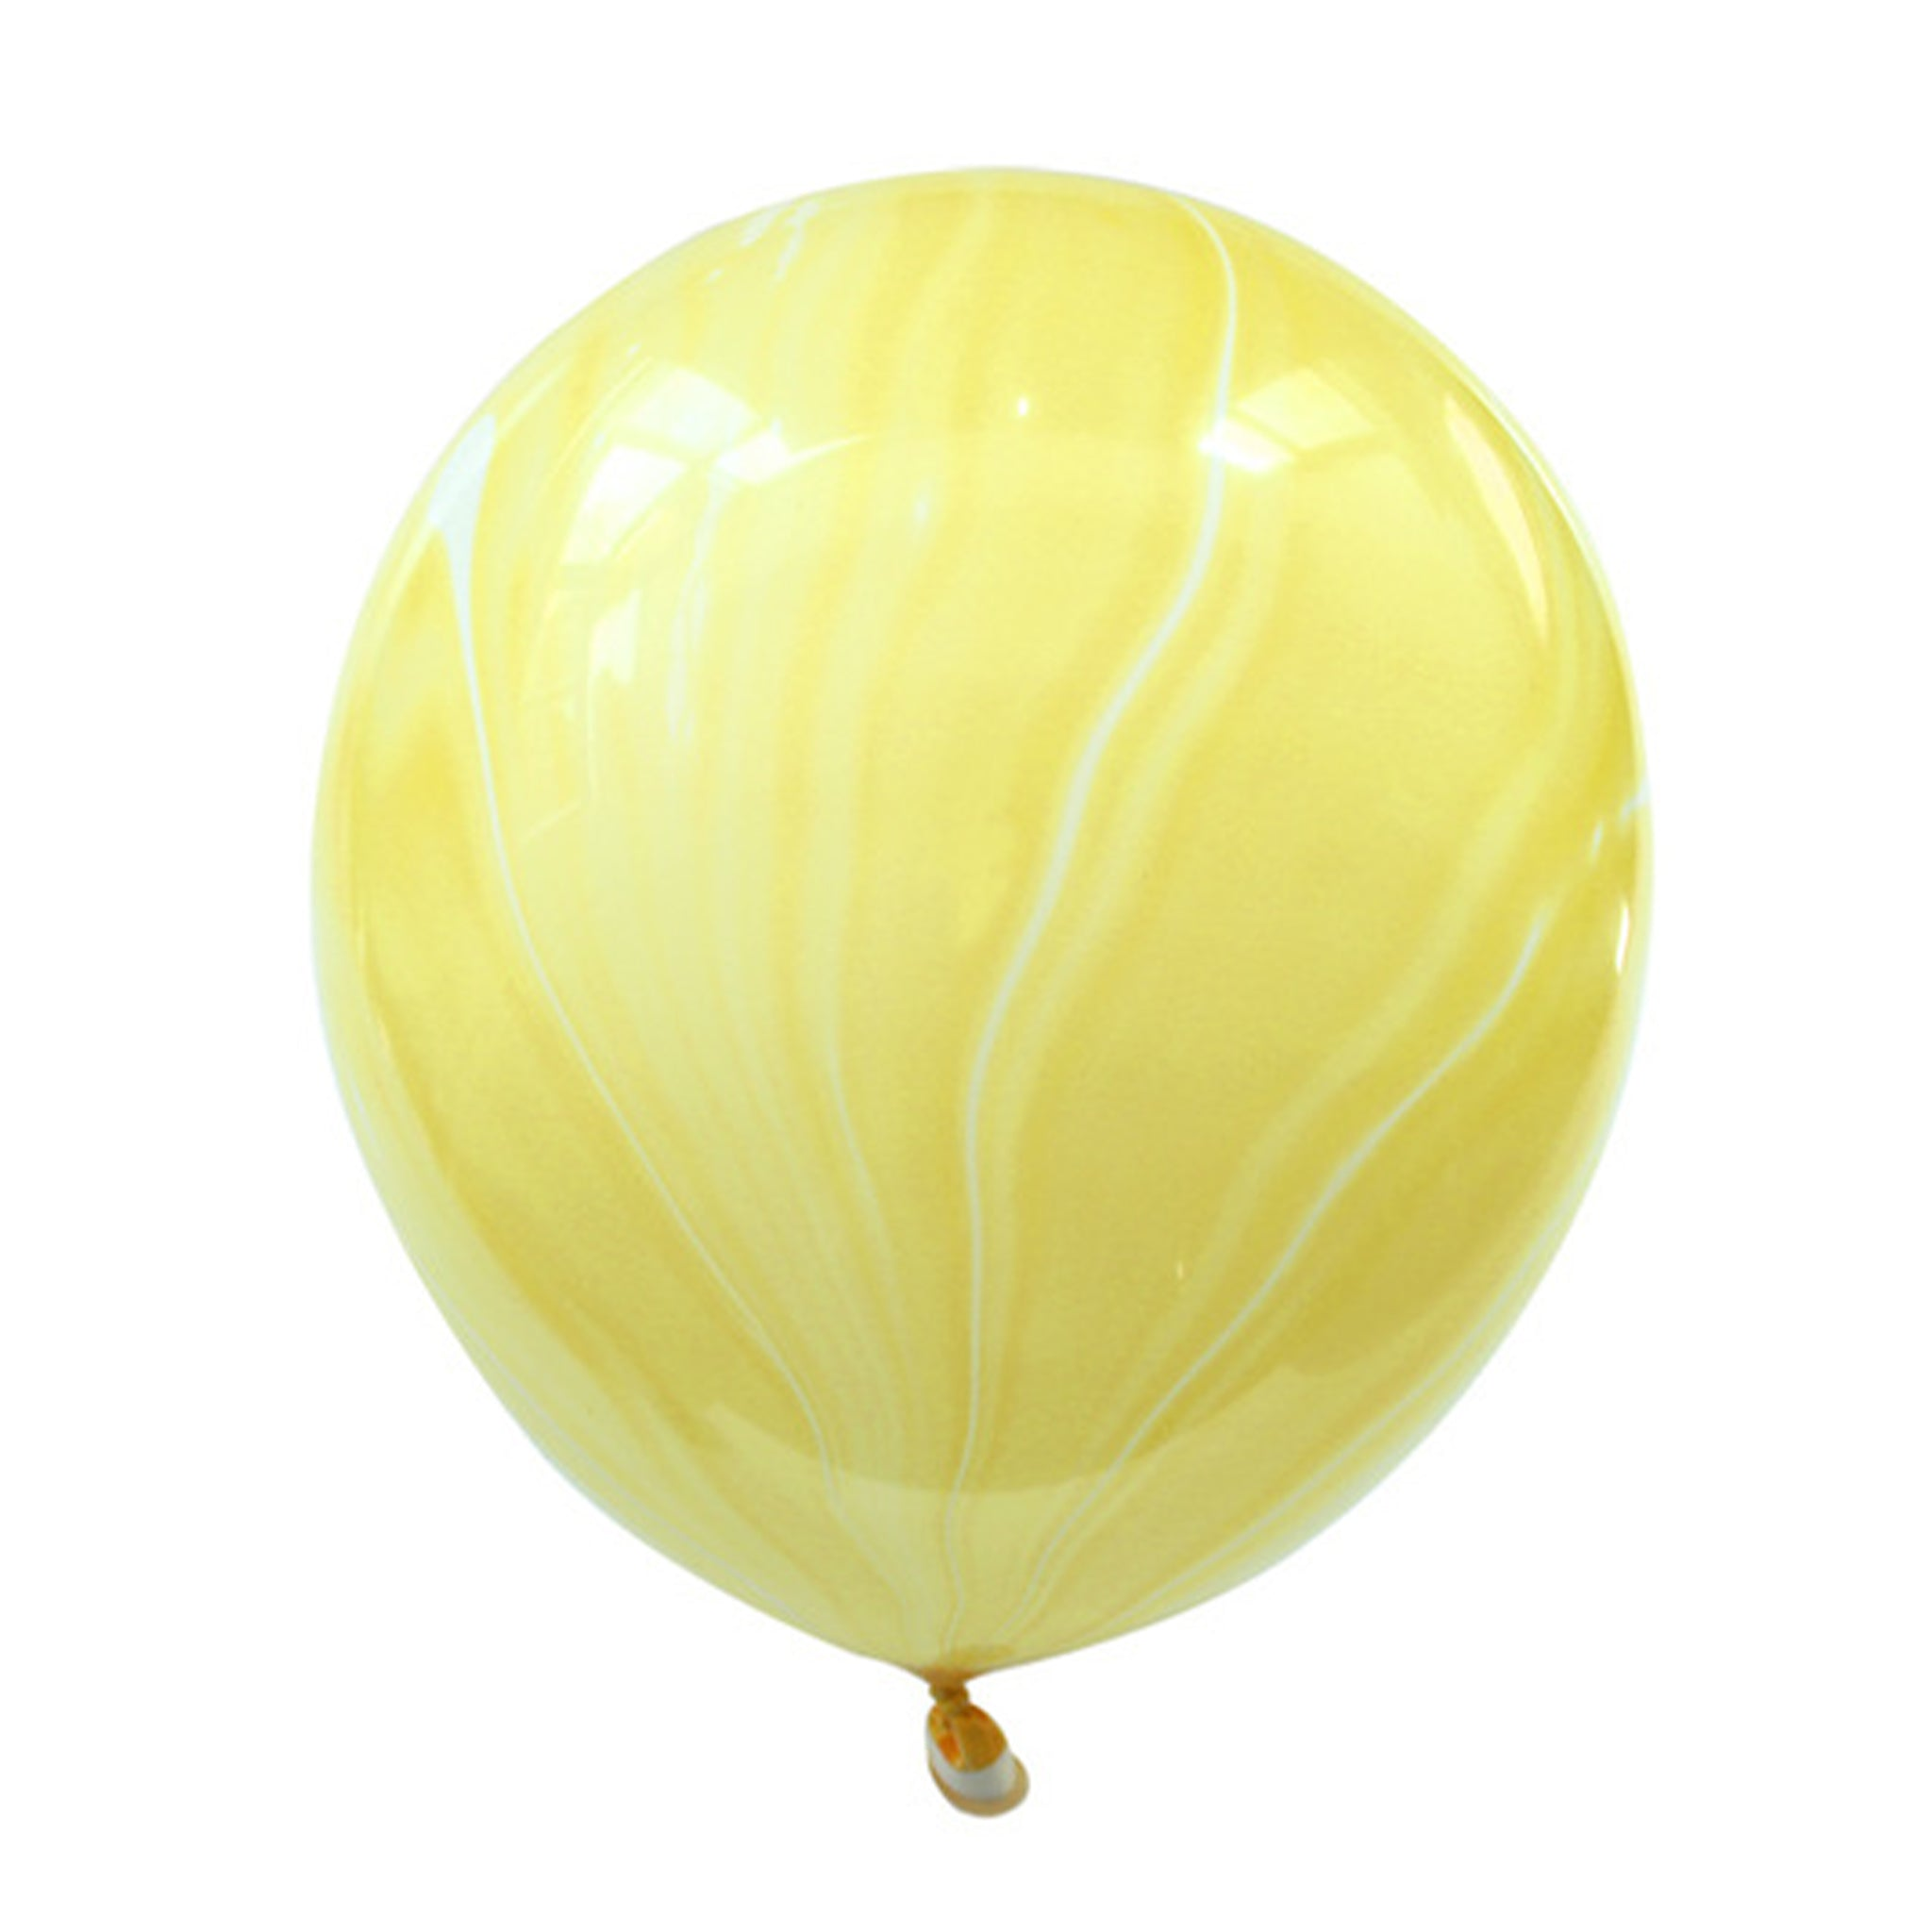 Yellow marble latex balloon for sale online in Dubai